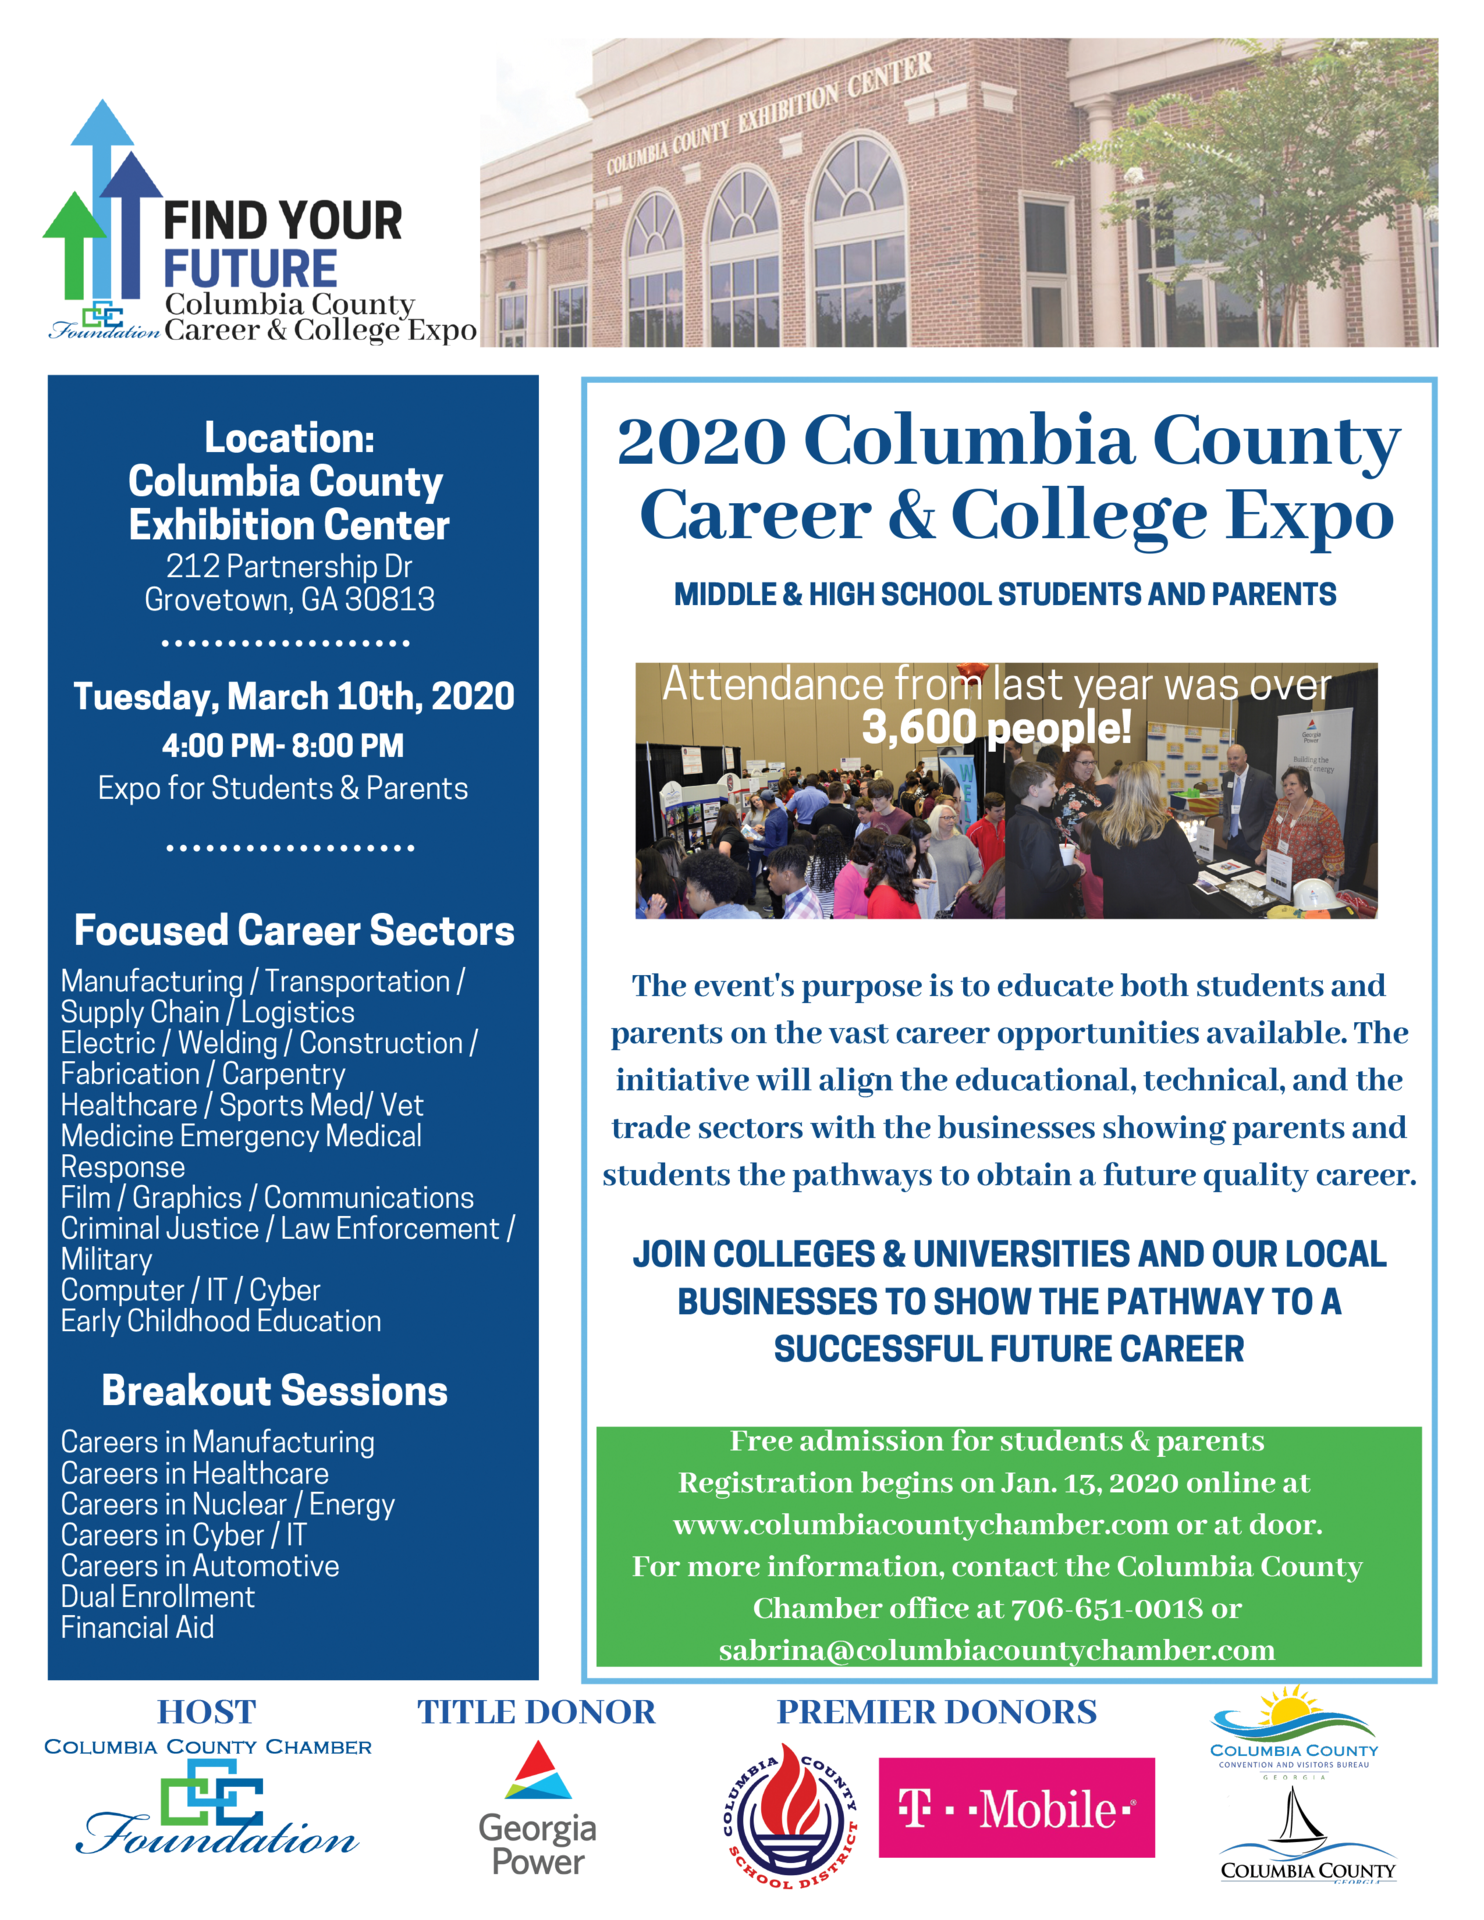 Find Your Future at the Columbia County Career and College Expo